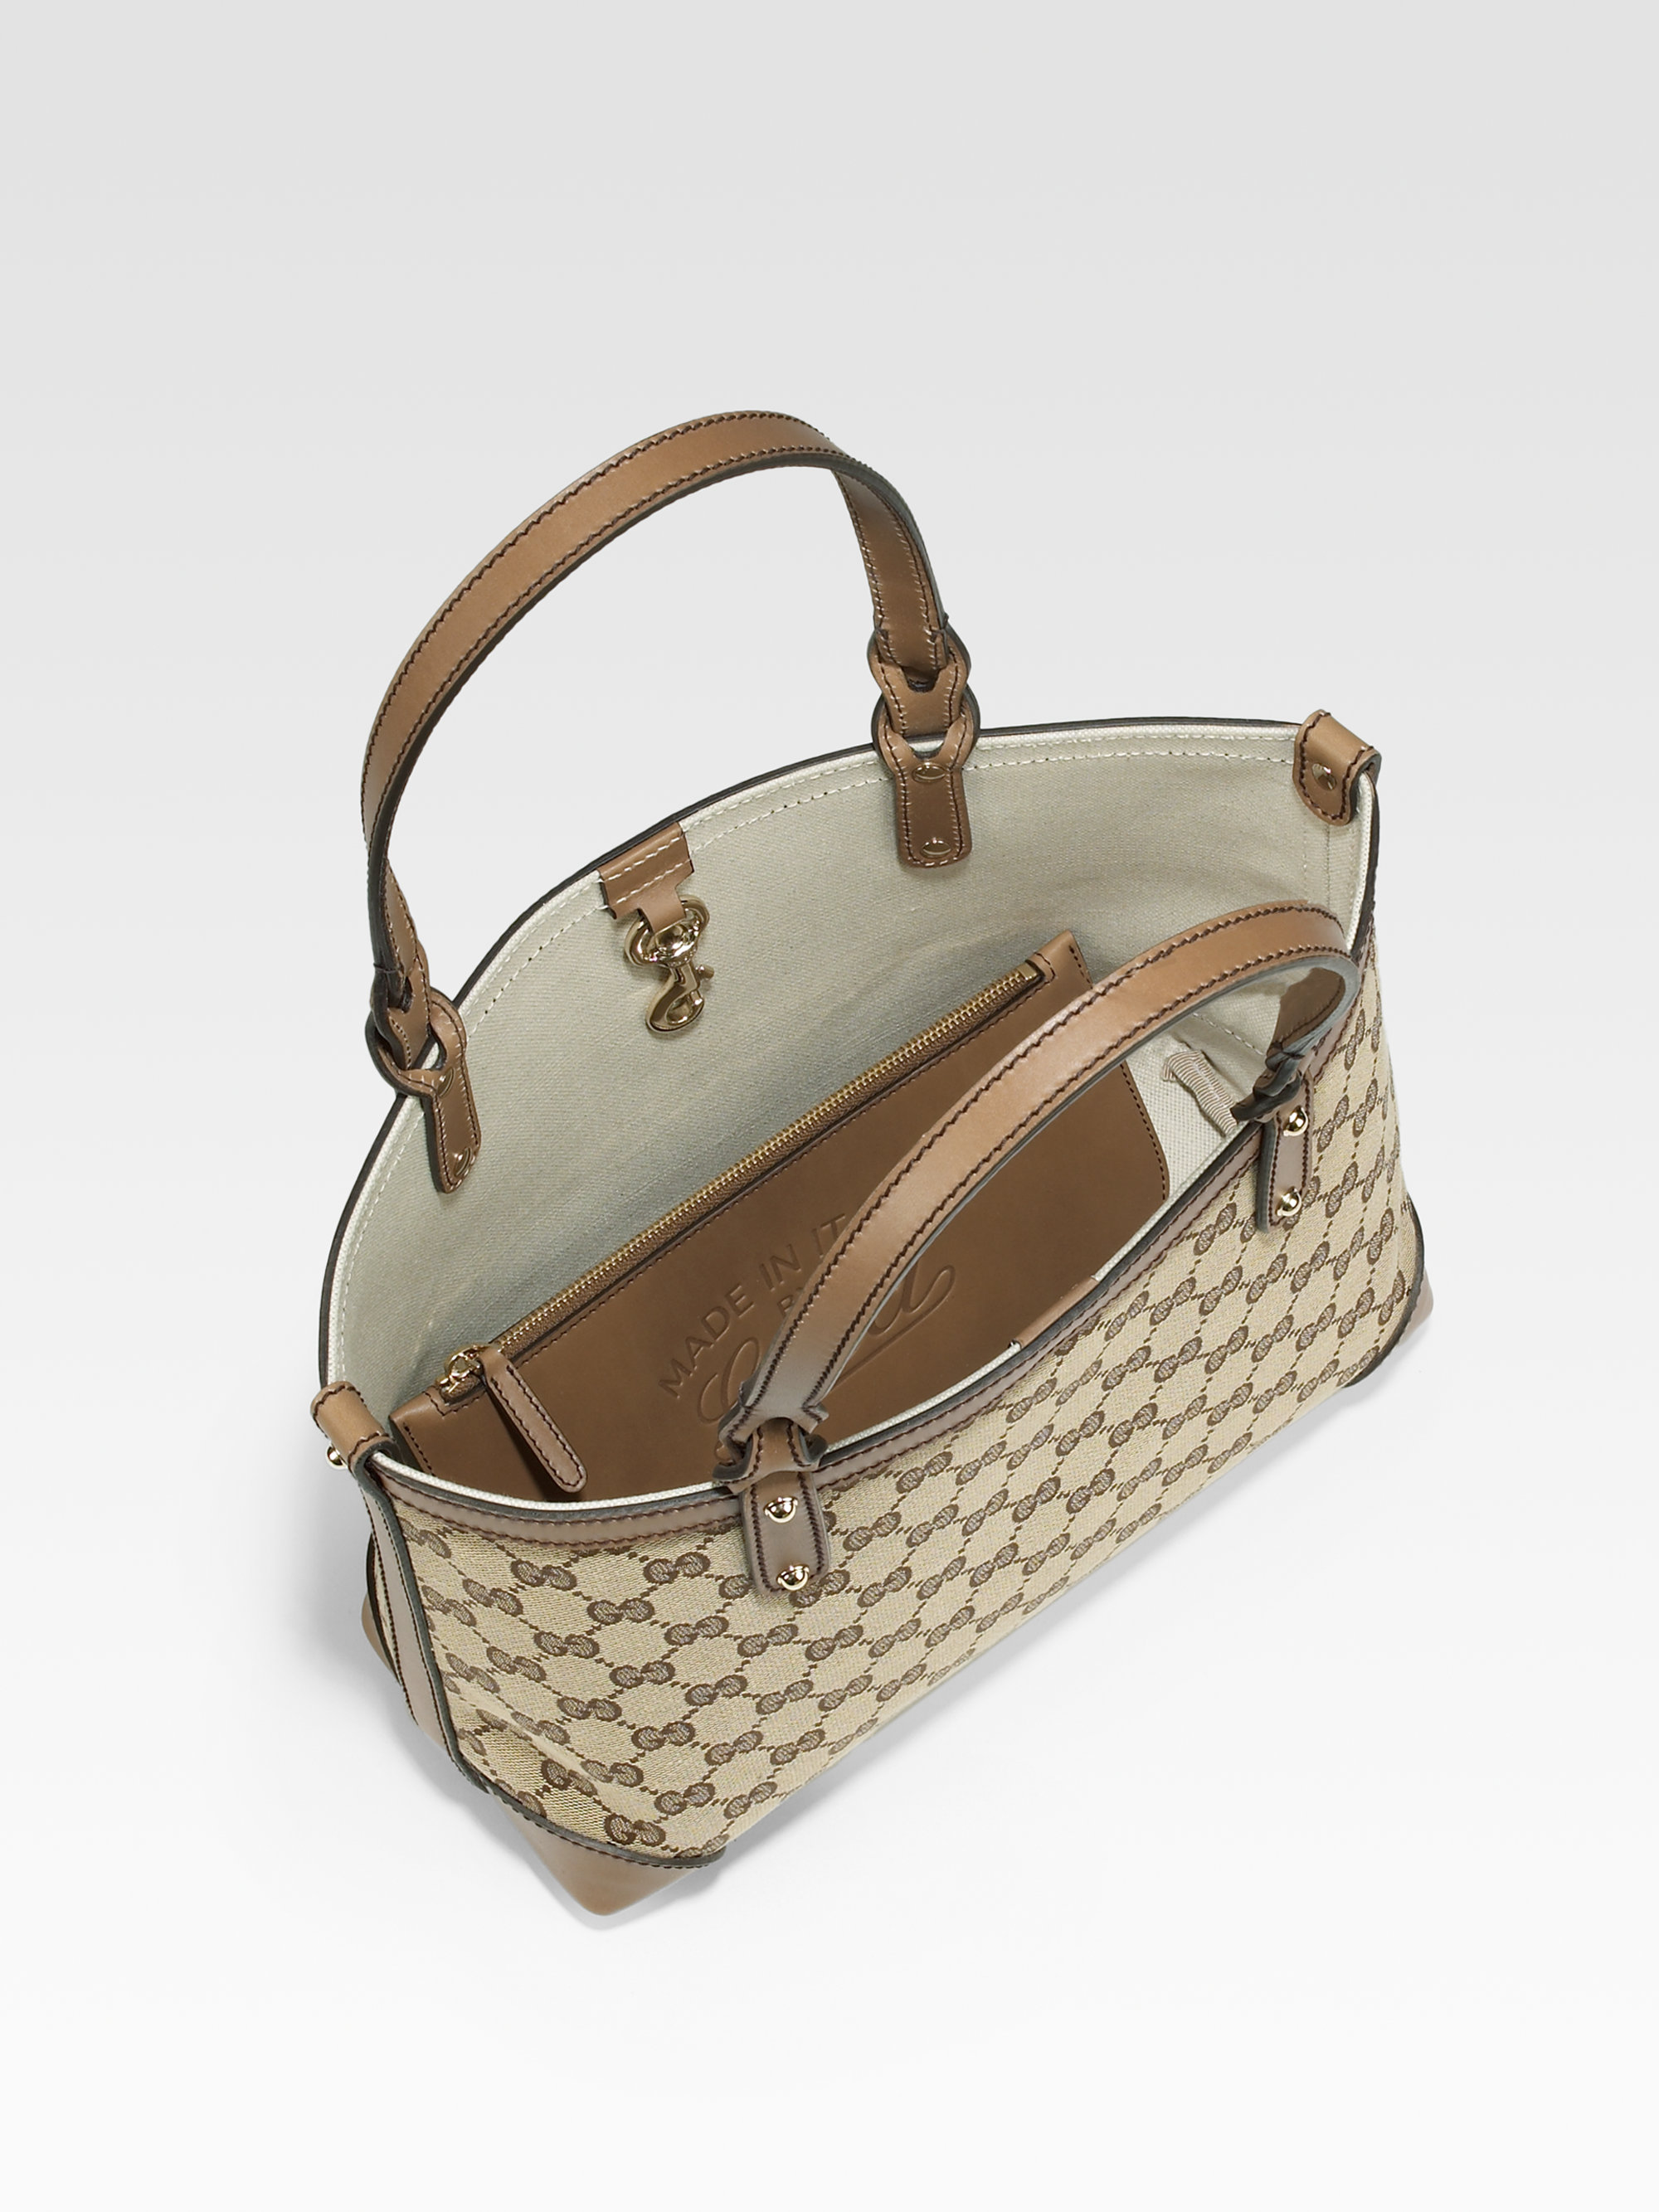 Gucci Craft Small Tote Bag in Natural   Lyst